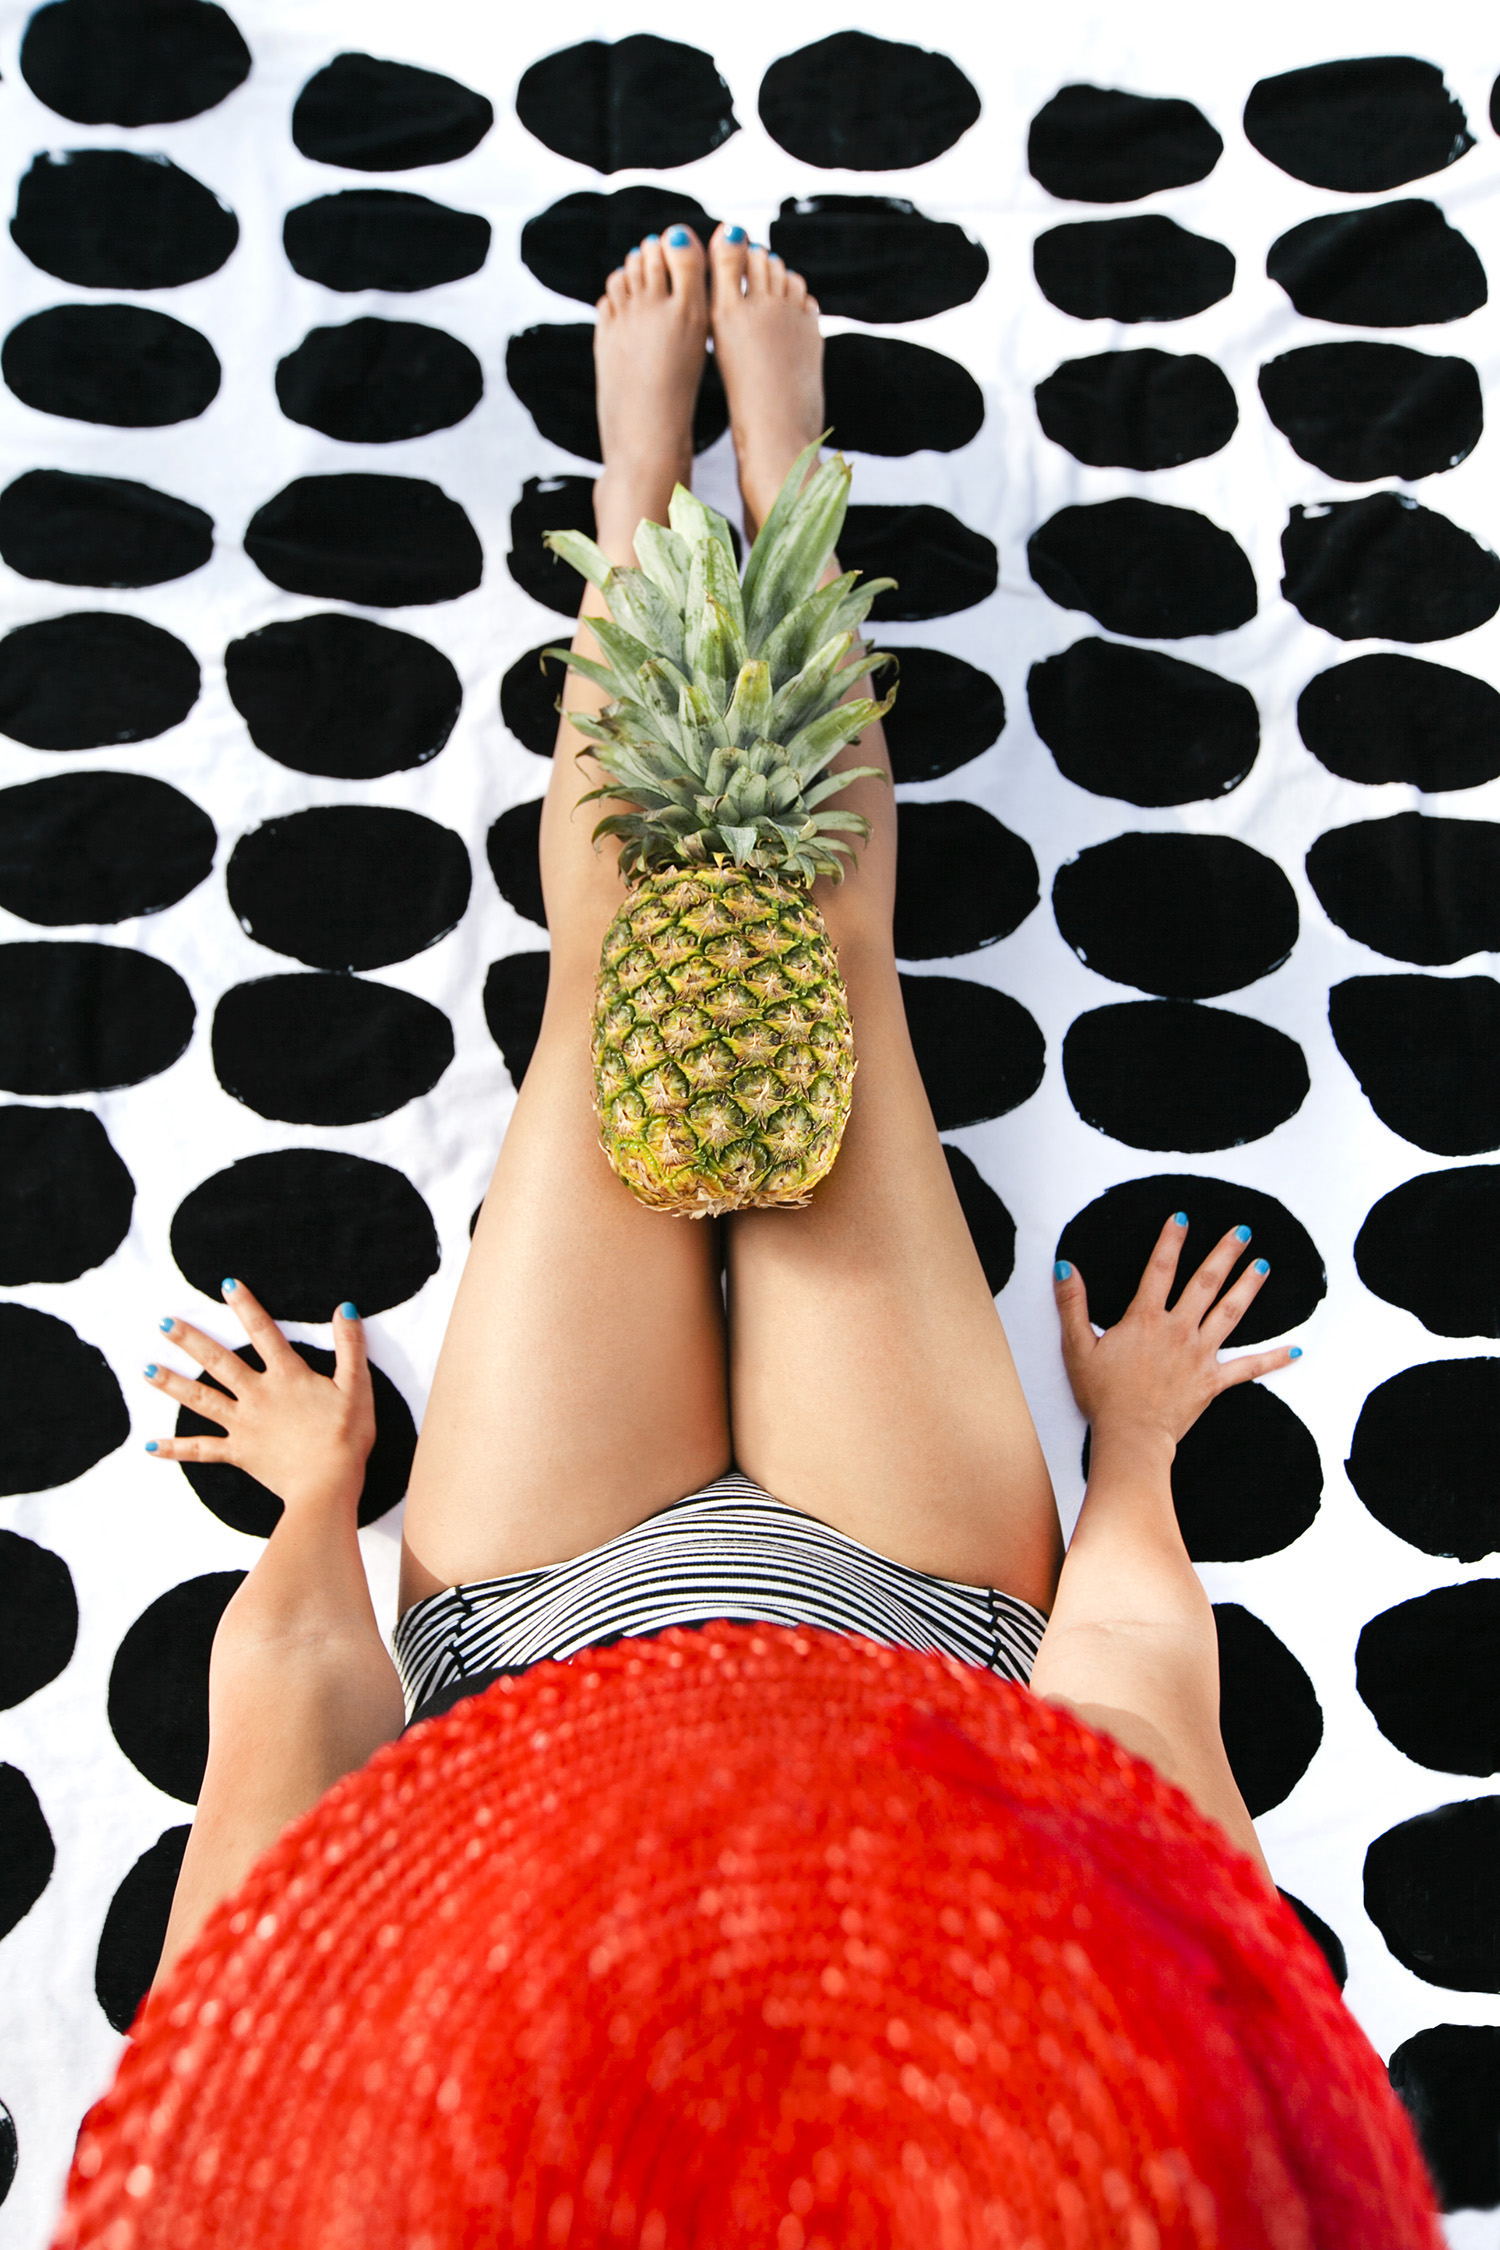 lifestyle-editorial-washington-dc-malek-naz-photography-vintage-bathingsuit-pineapple.jpg